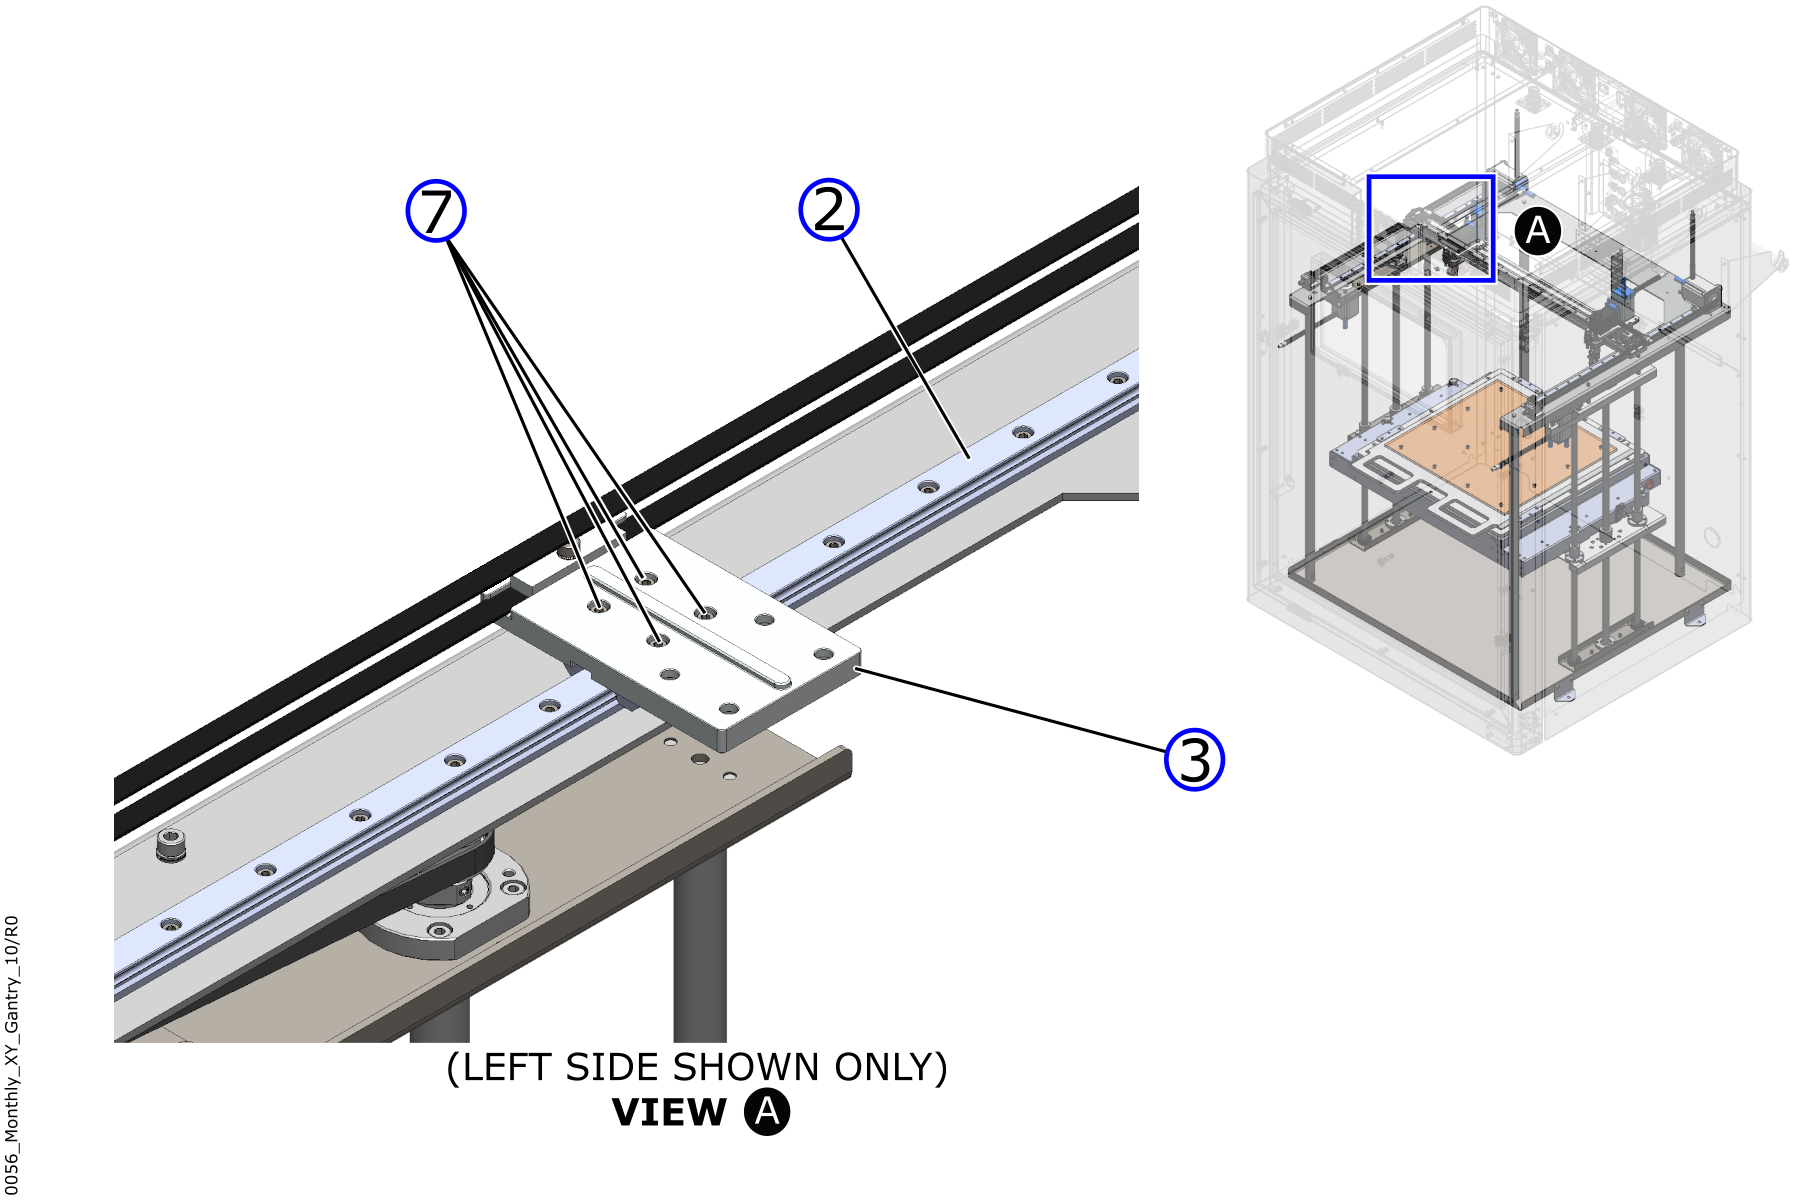 Adjustment Screws for Mounting Plate